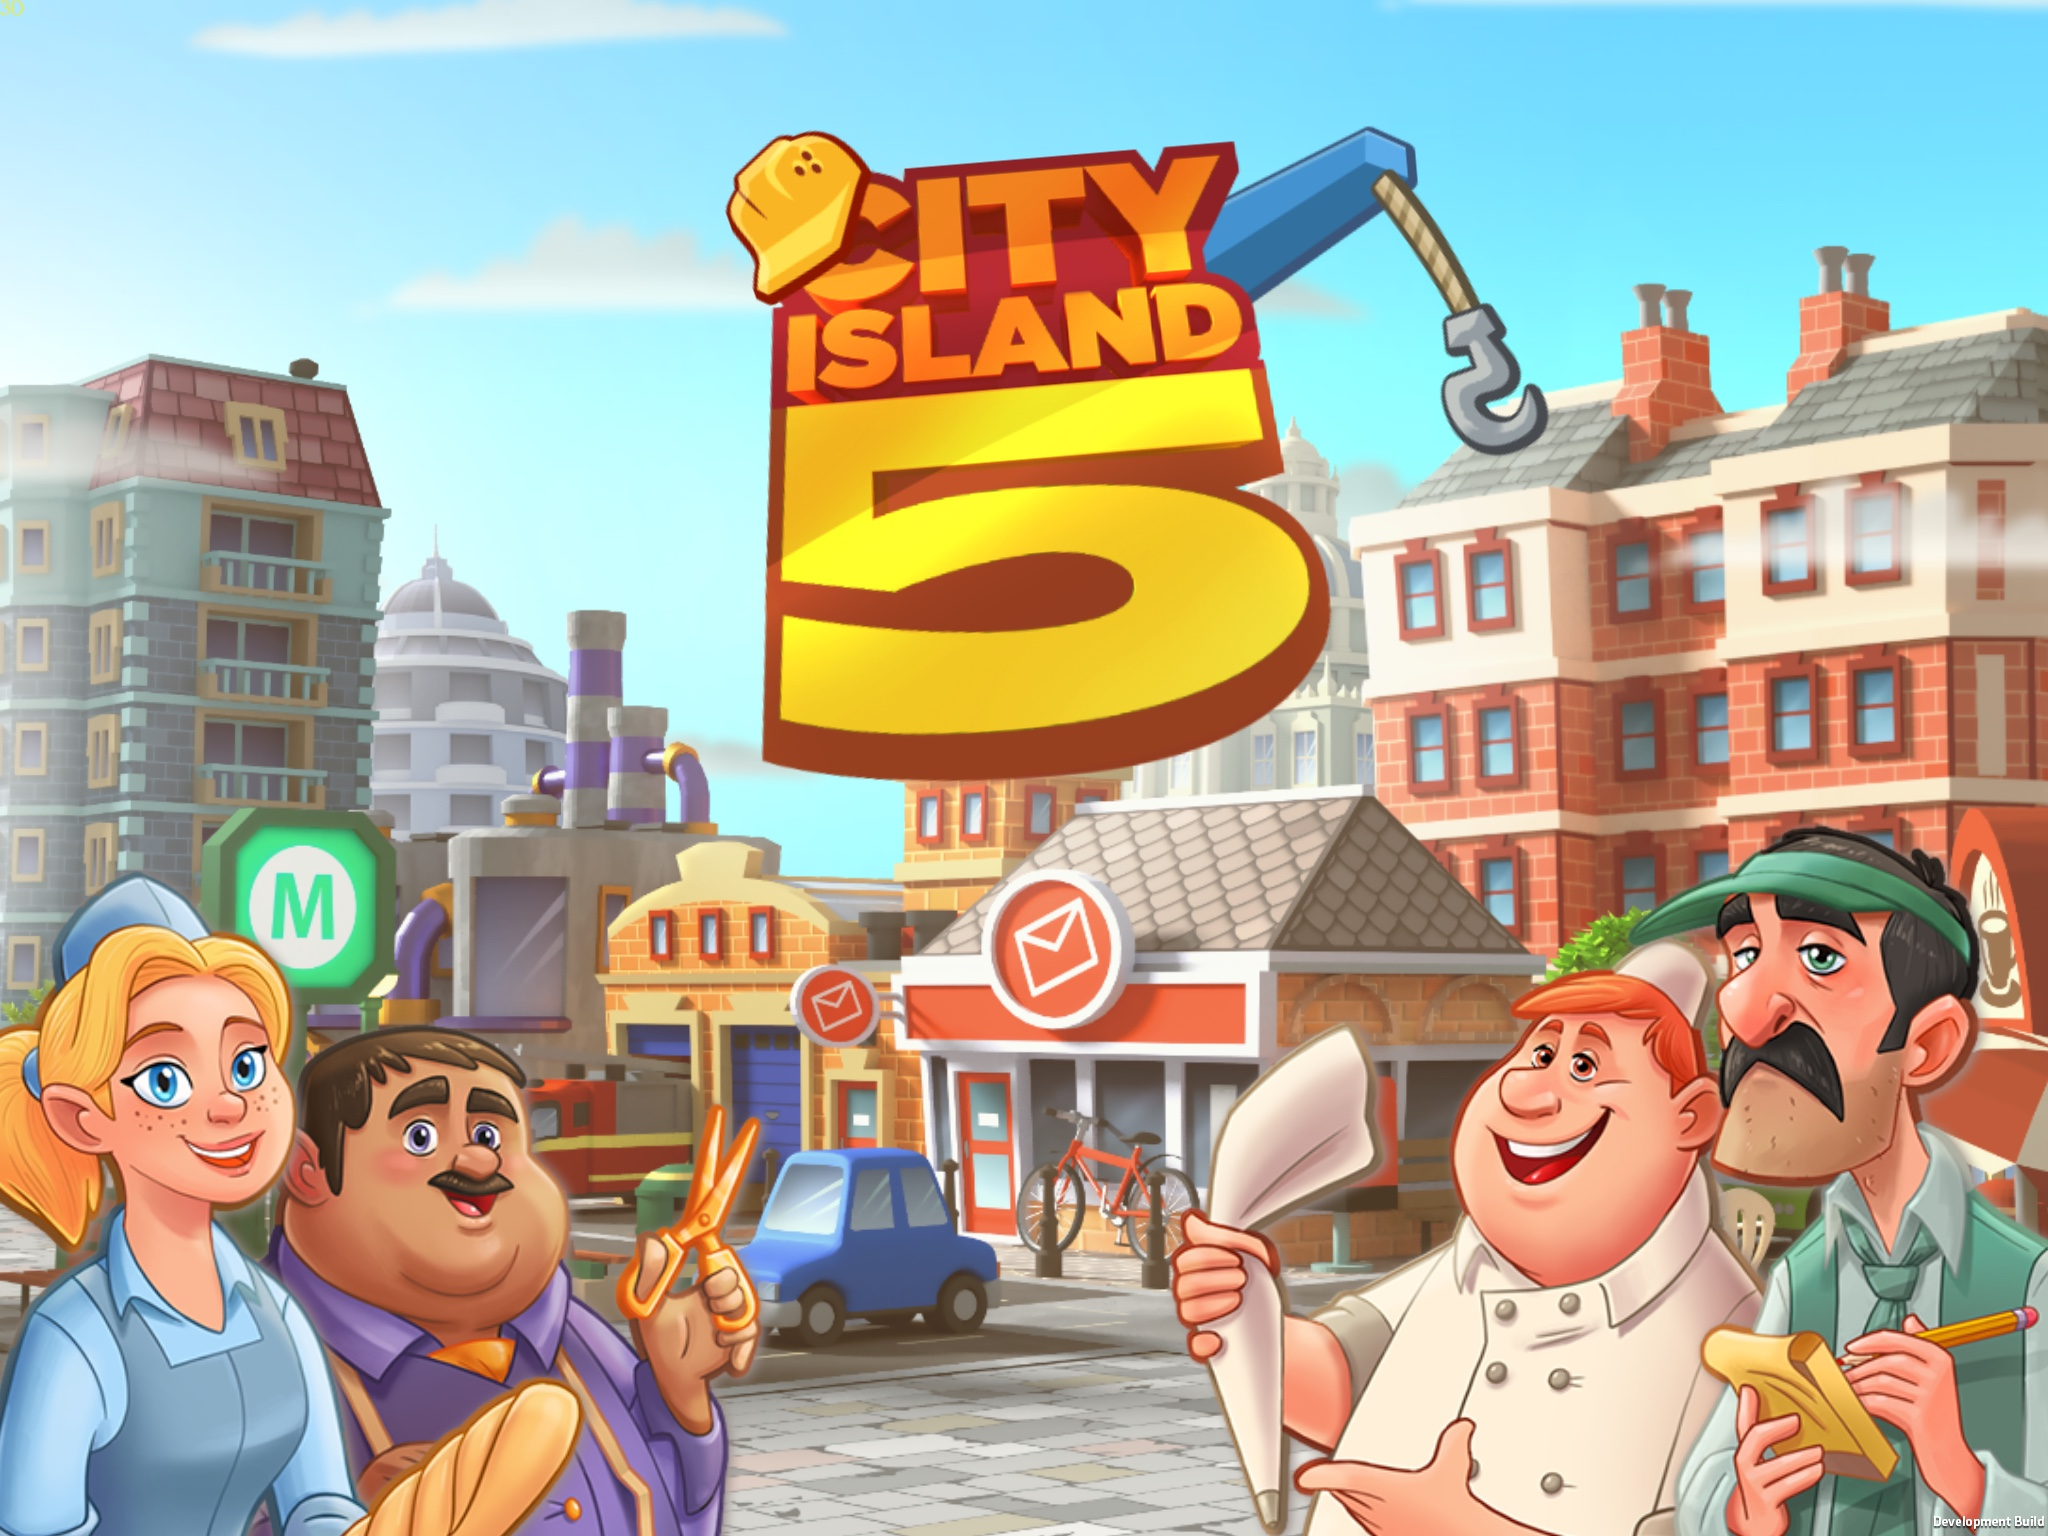 City Island 5 – coming soon!